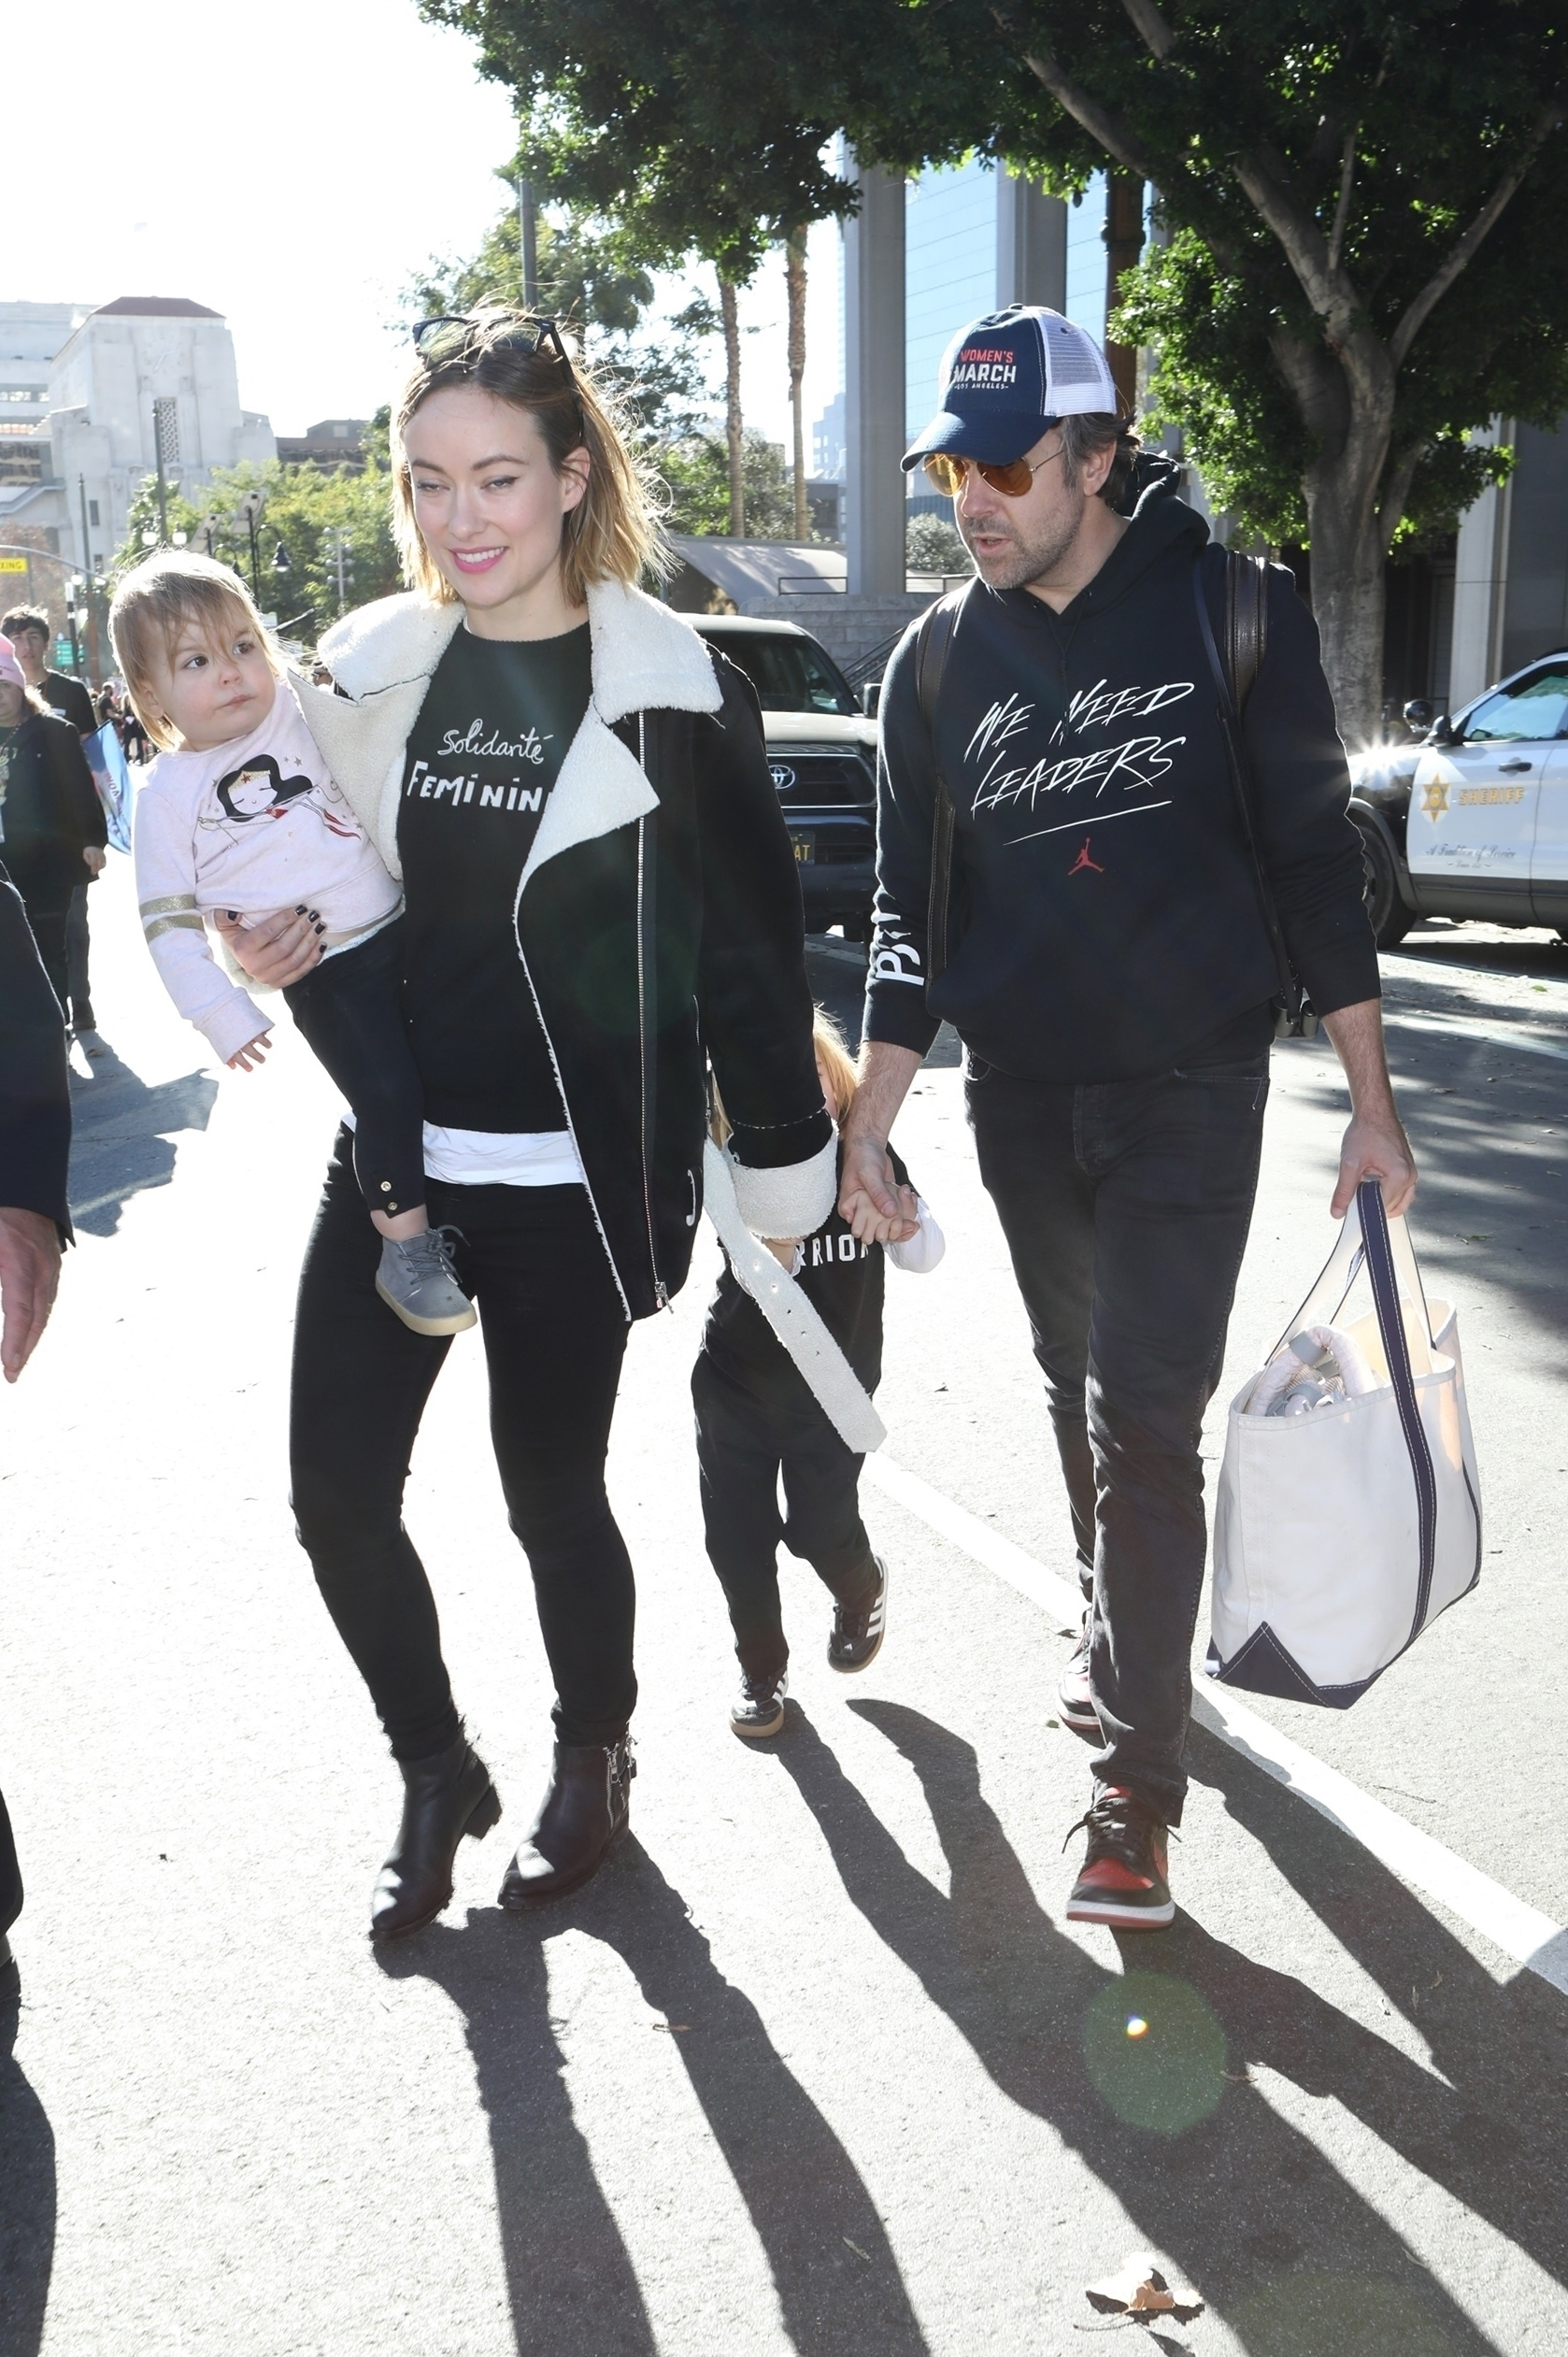 Olivia Wilde attends the 2018 LA Women's March with her family in Los Angeles on Jan. 20, 2018.